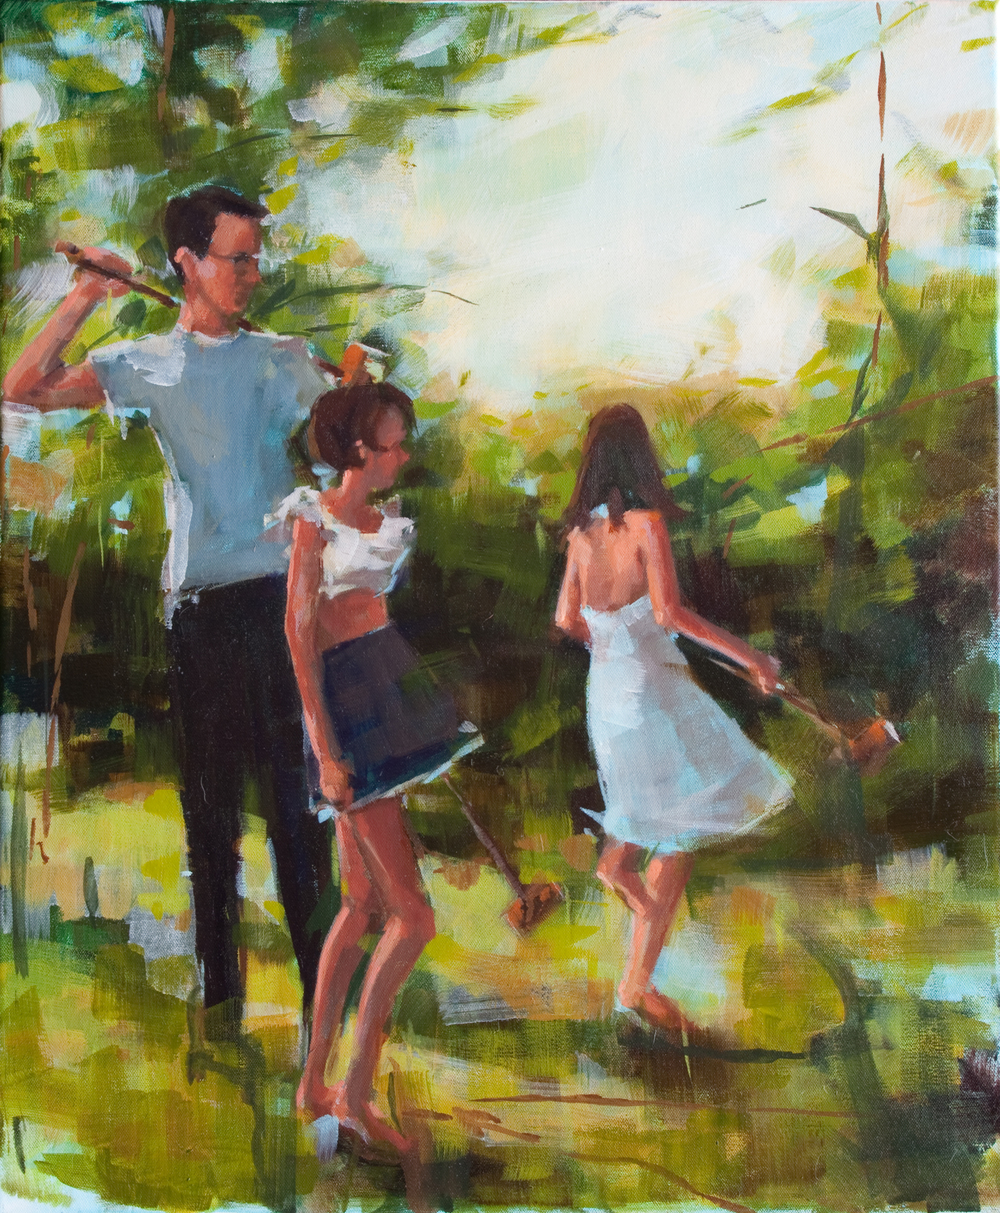 "Croquet, oil on canvas, 24"" x 20"", 2012"